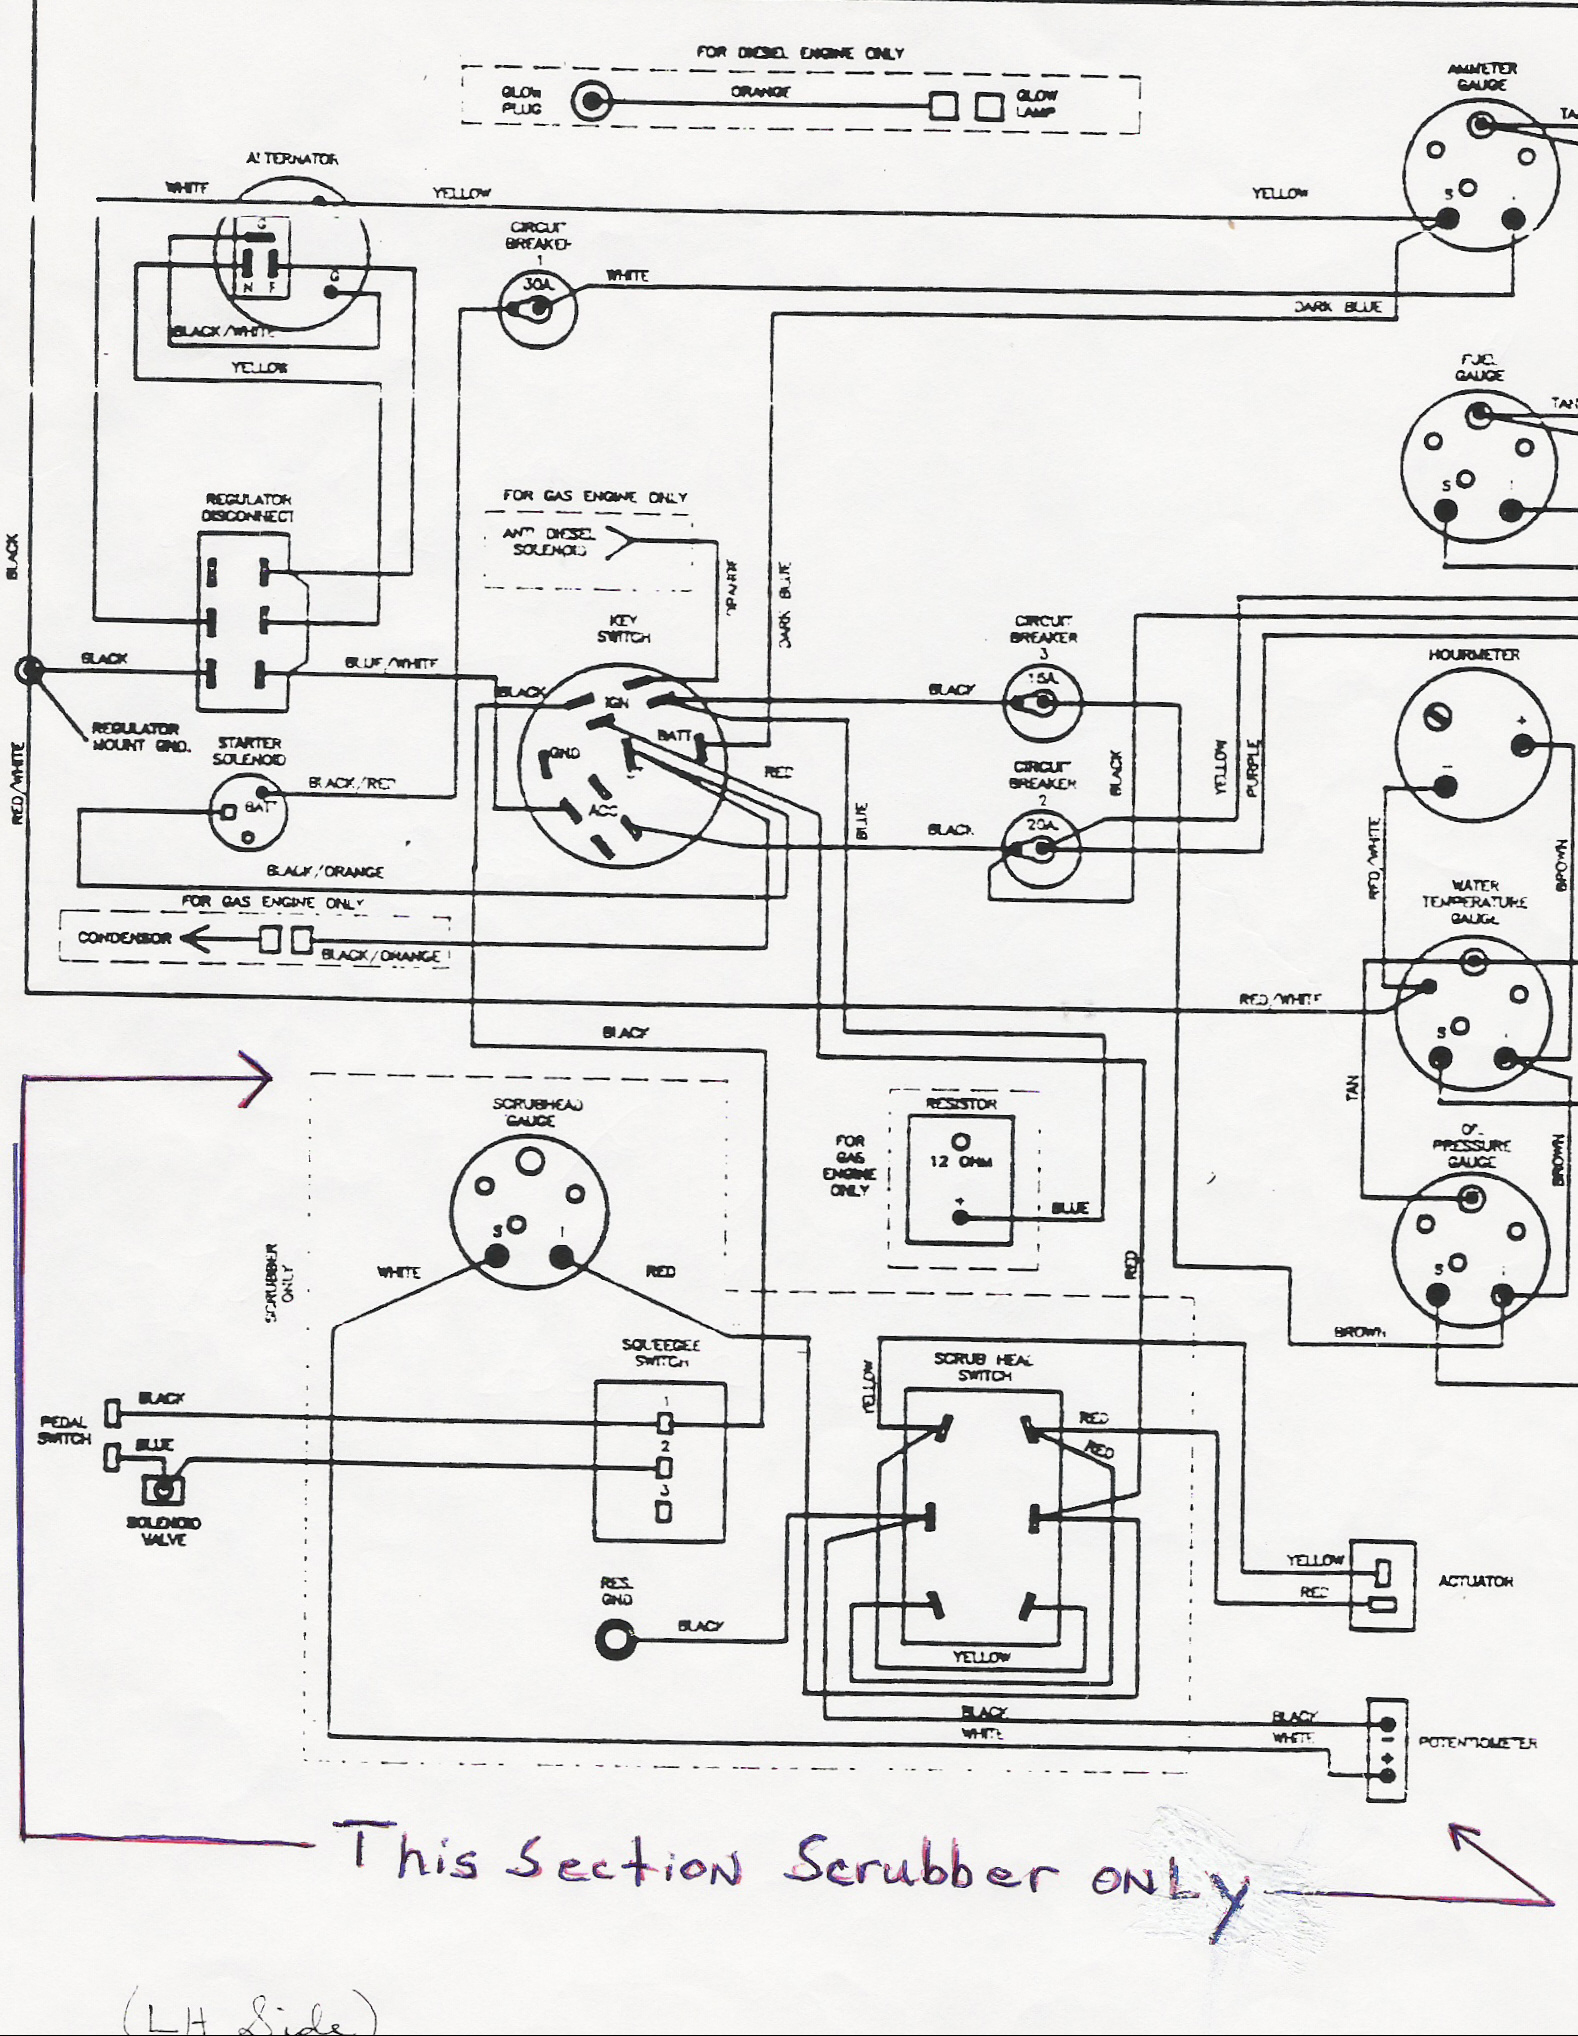 Wiring Diagram For Onan Generator | Wiring Diagram - Onan 4.0 Rv Genset Wiring Diagram